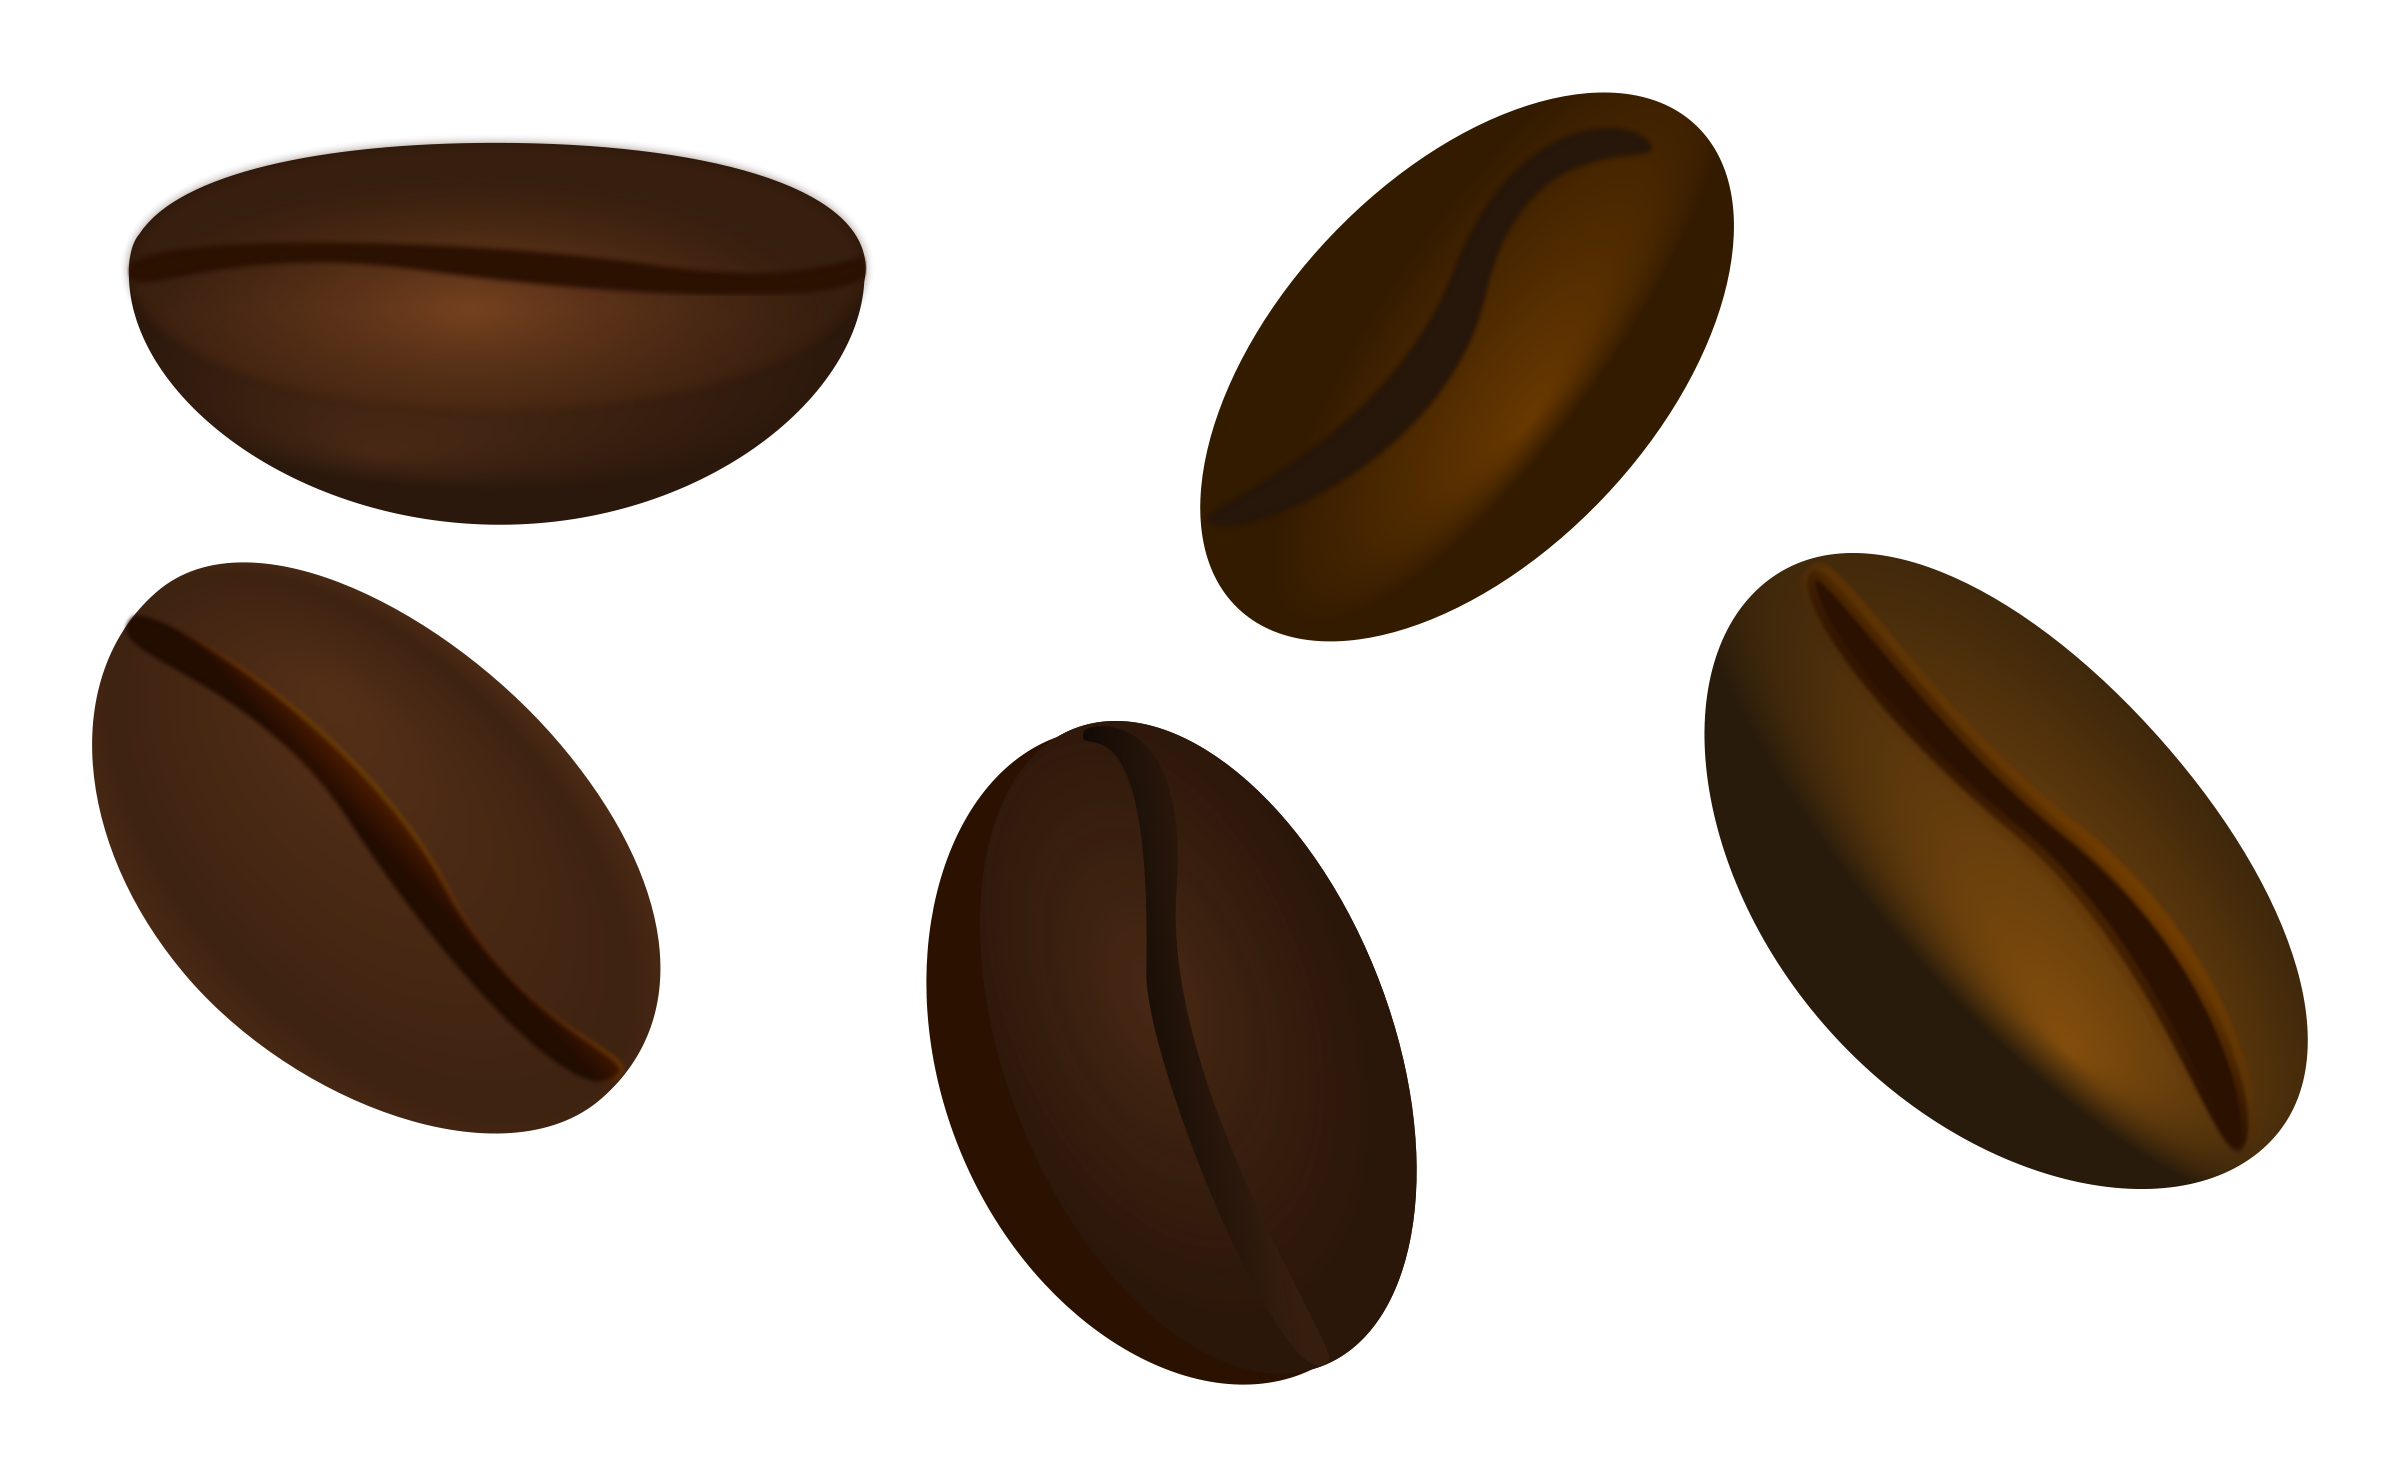 Coffee panda free images. Beans clipart transparent